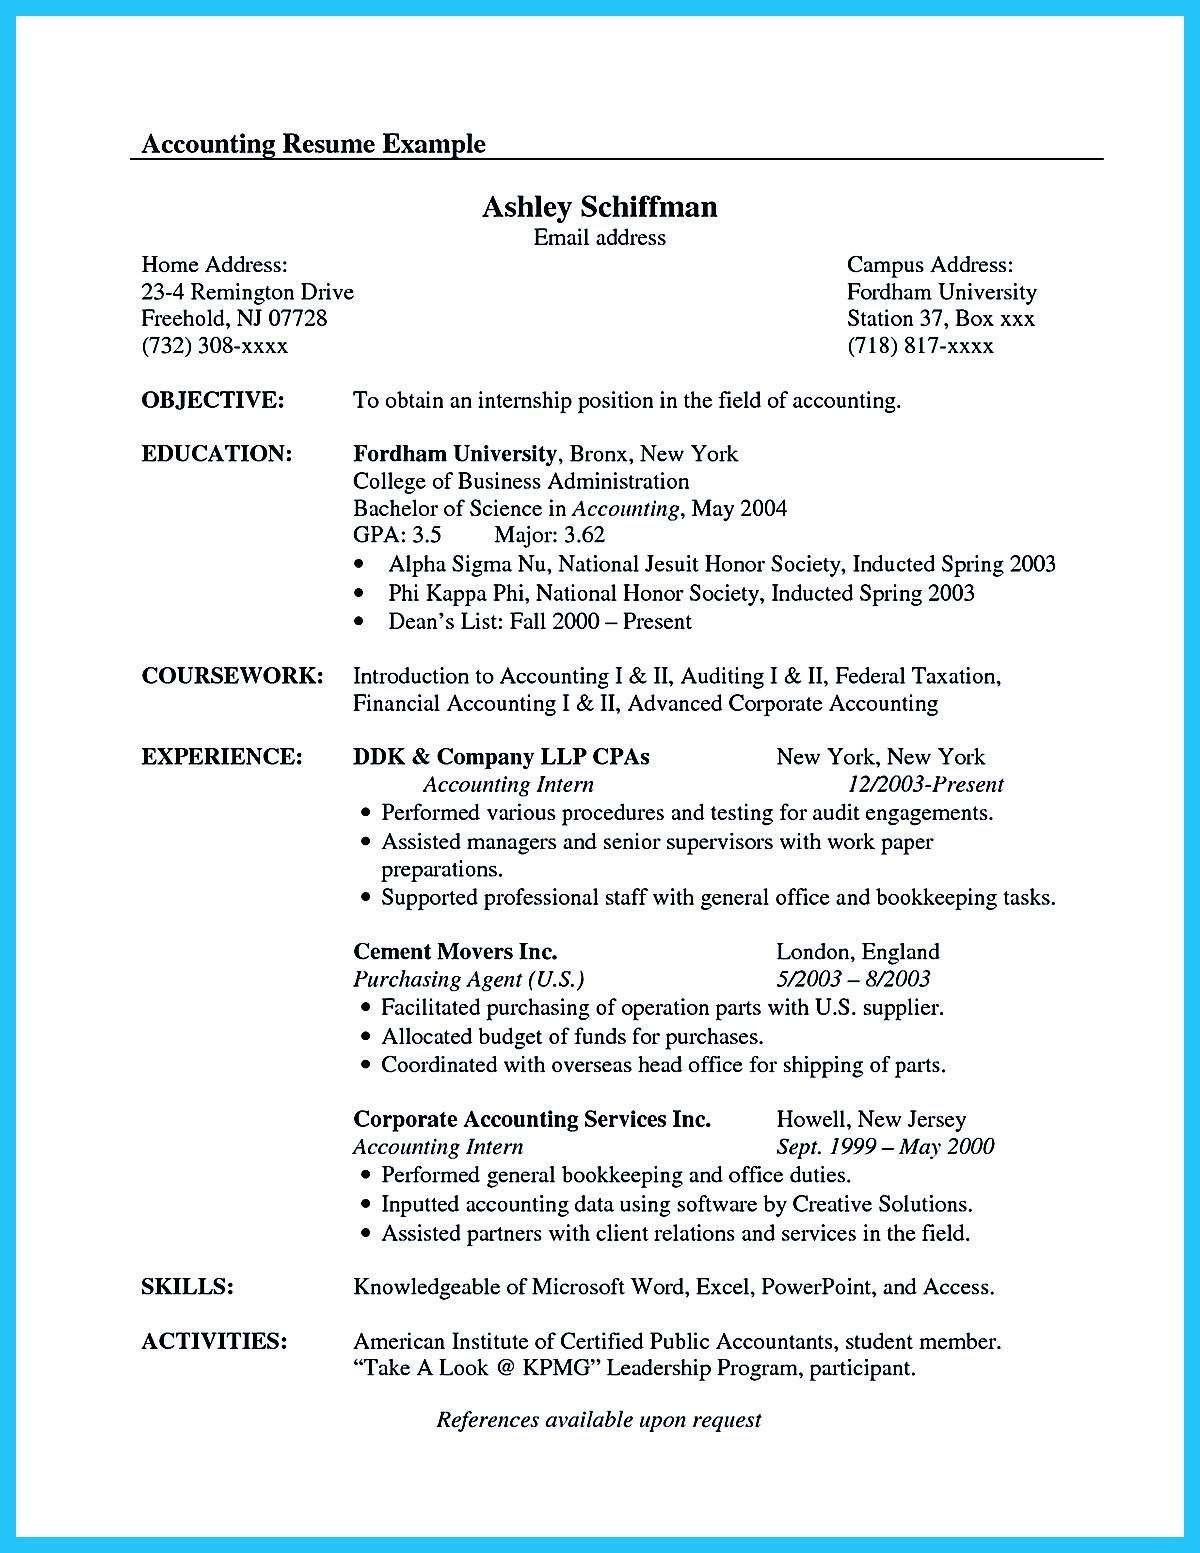 30 Accounting Intern Resume Samples In 2020 With Images Resume